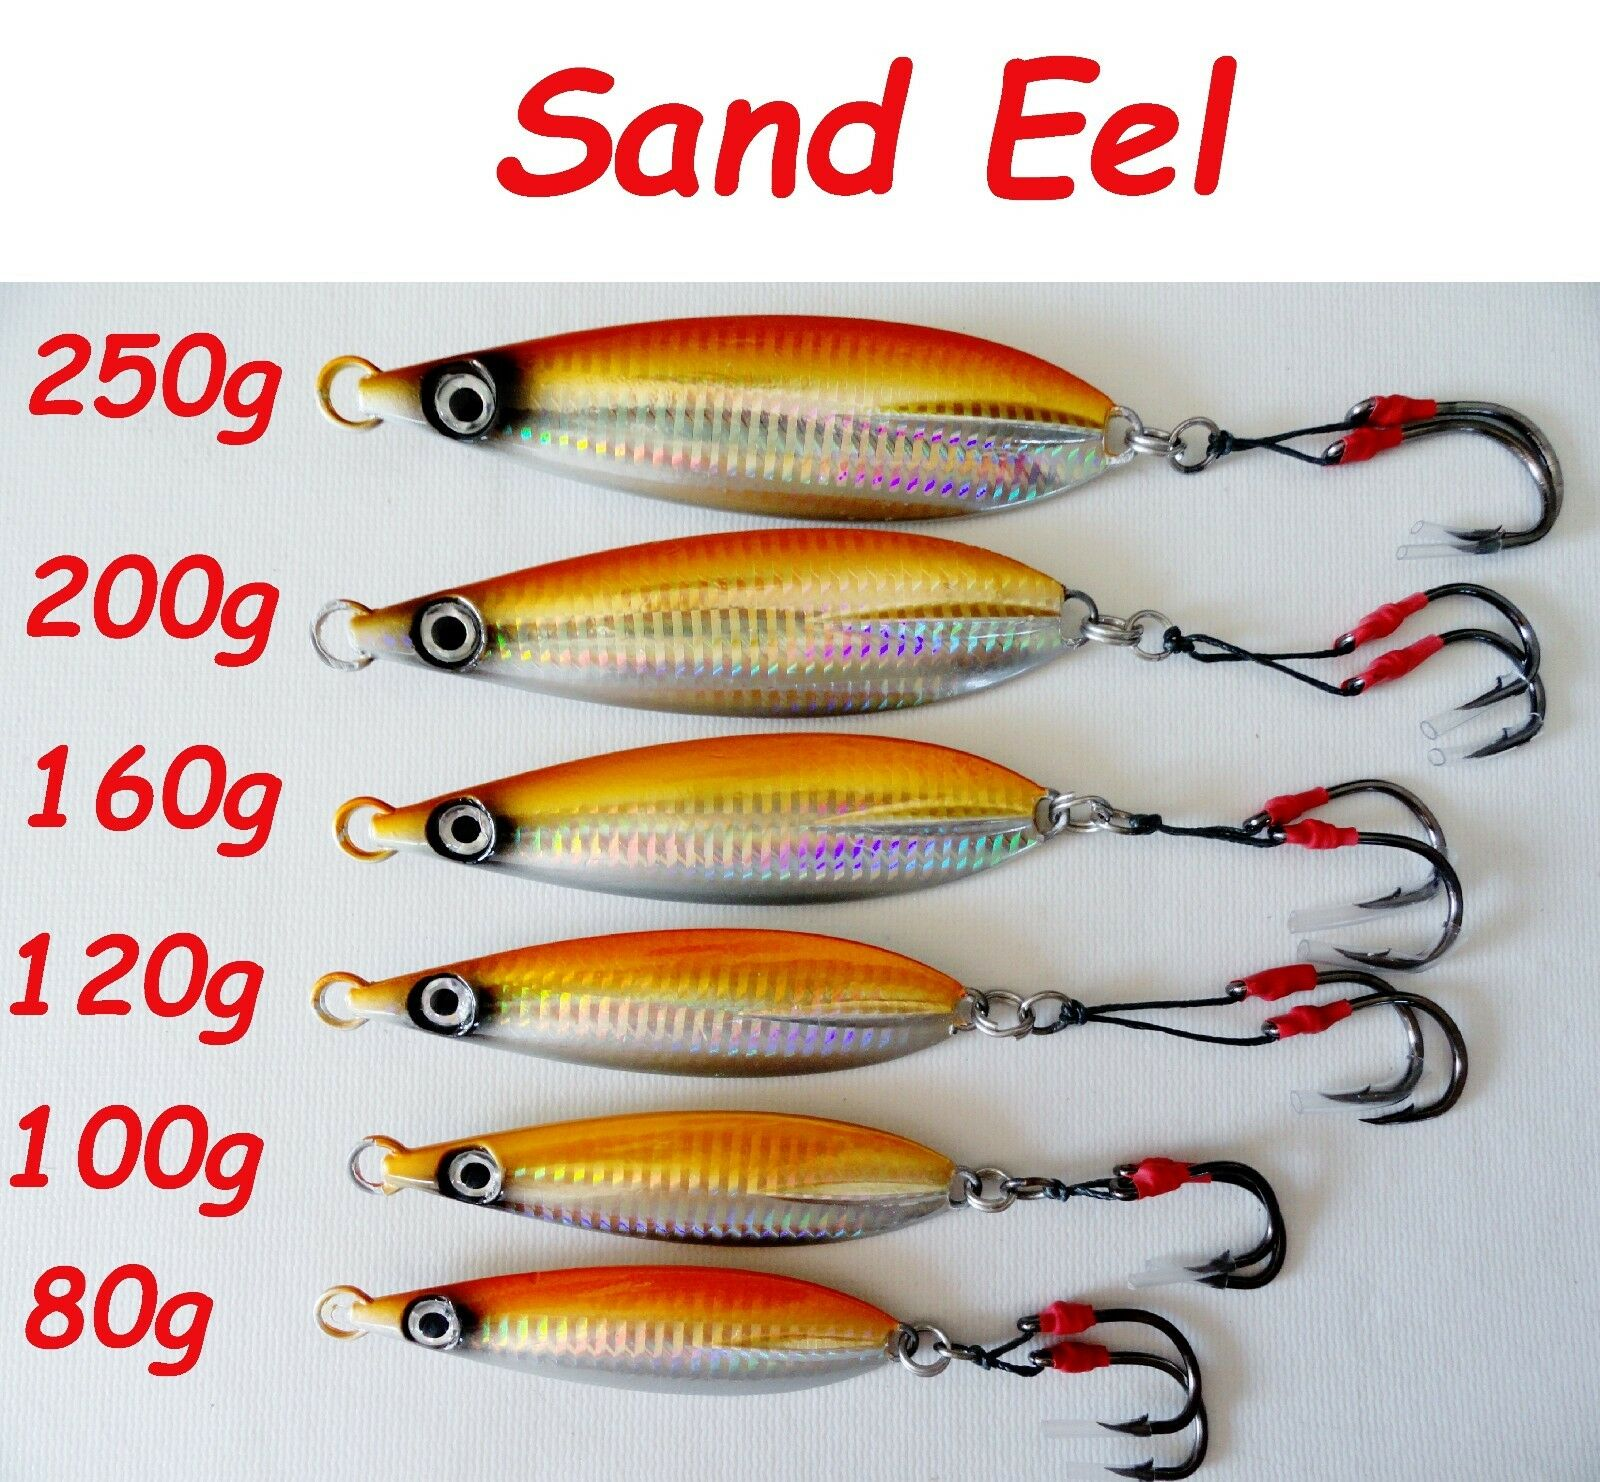 1-10 Pieces Flat Fall Keel greenical Jigs Sand Eel 80g 100g 120g 160g 200g 250g